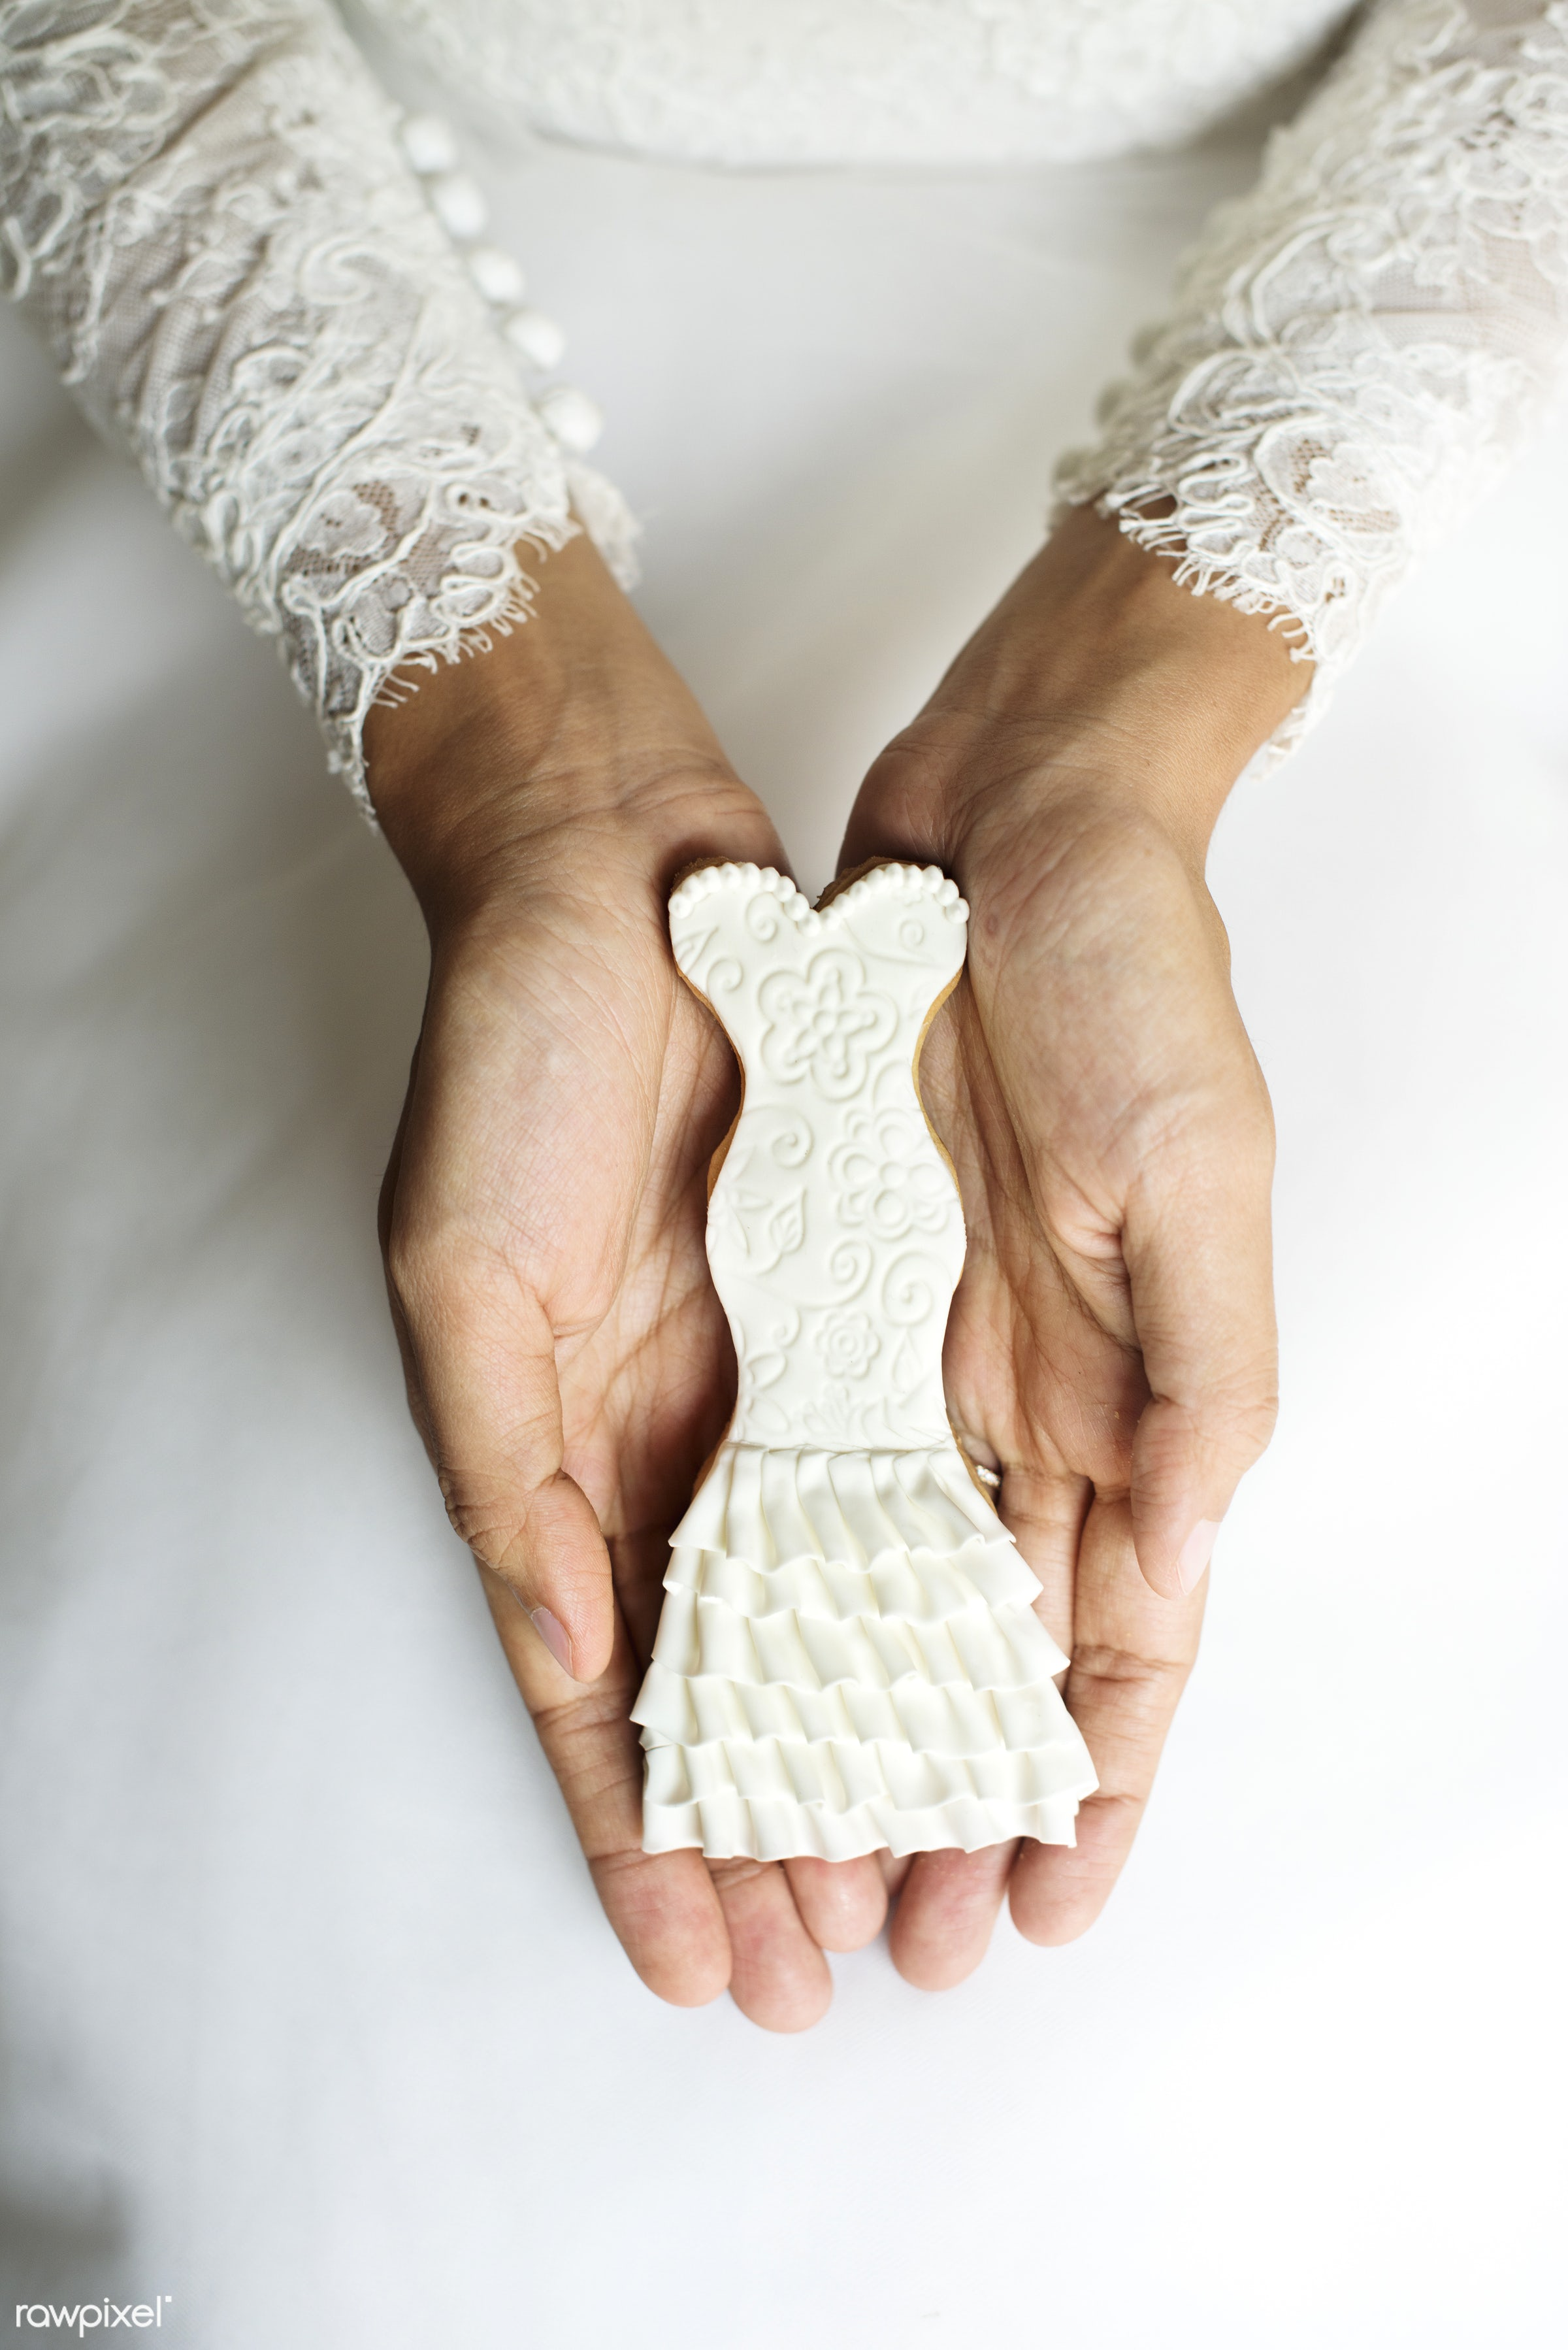 bride, cookie, bakery, bridal, celebration, ceremony, closeup, decoration, dessert, hands, love, marriage, married, occasion...